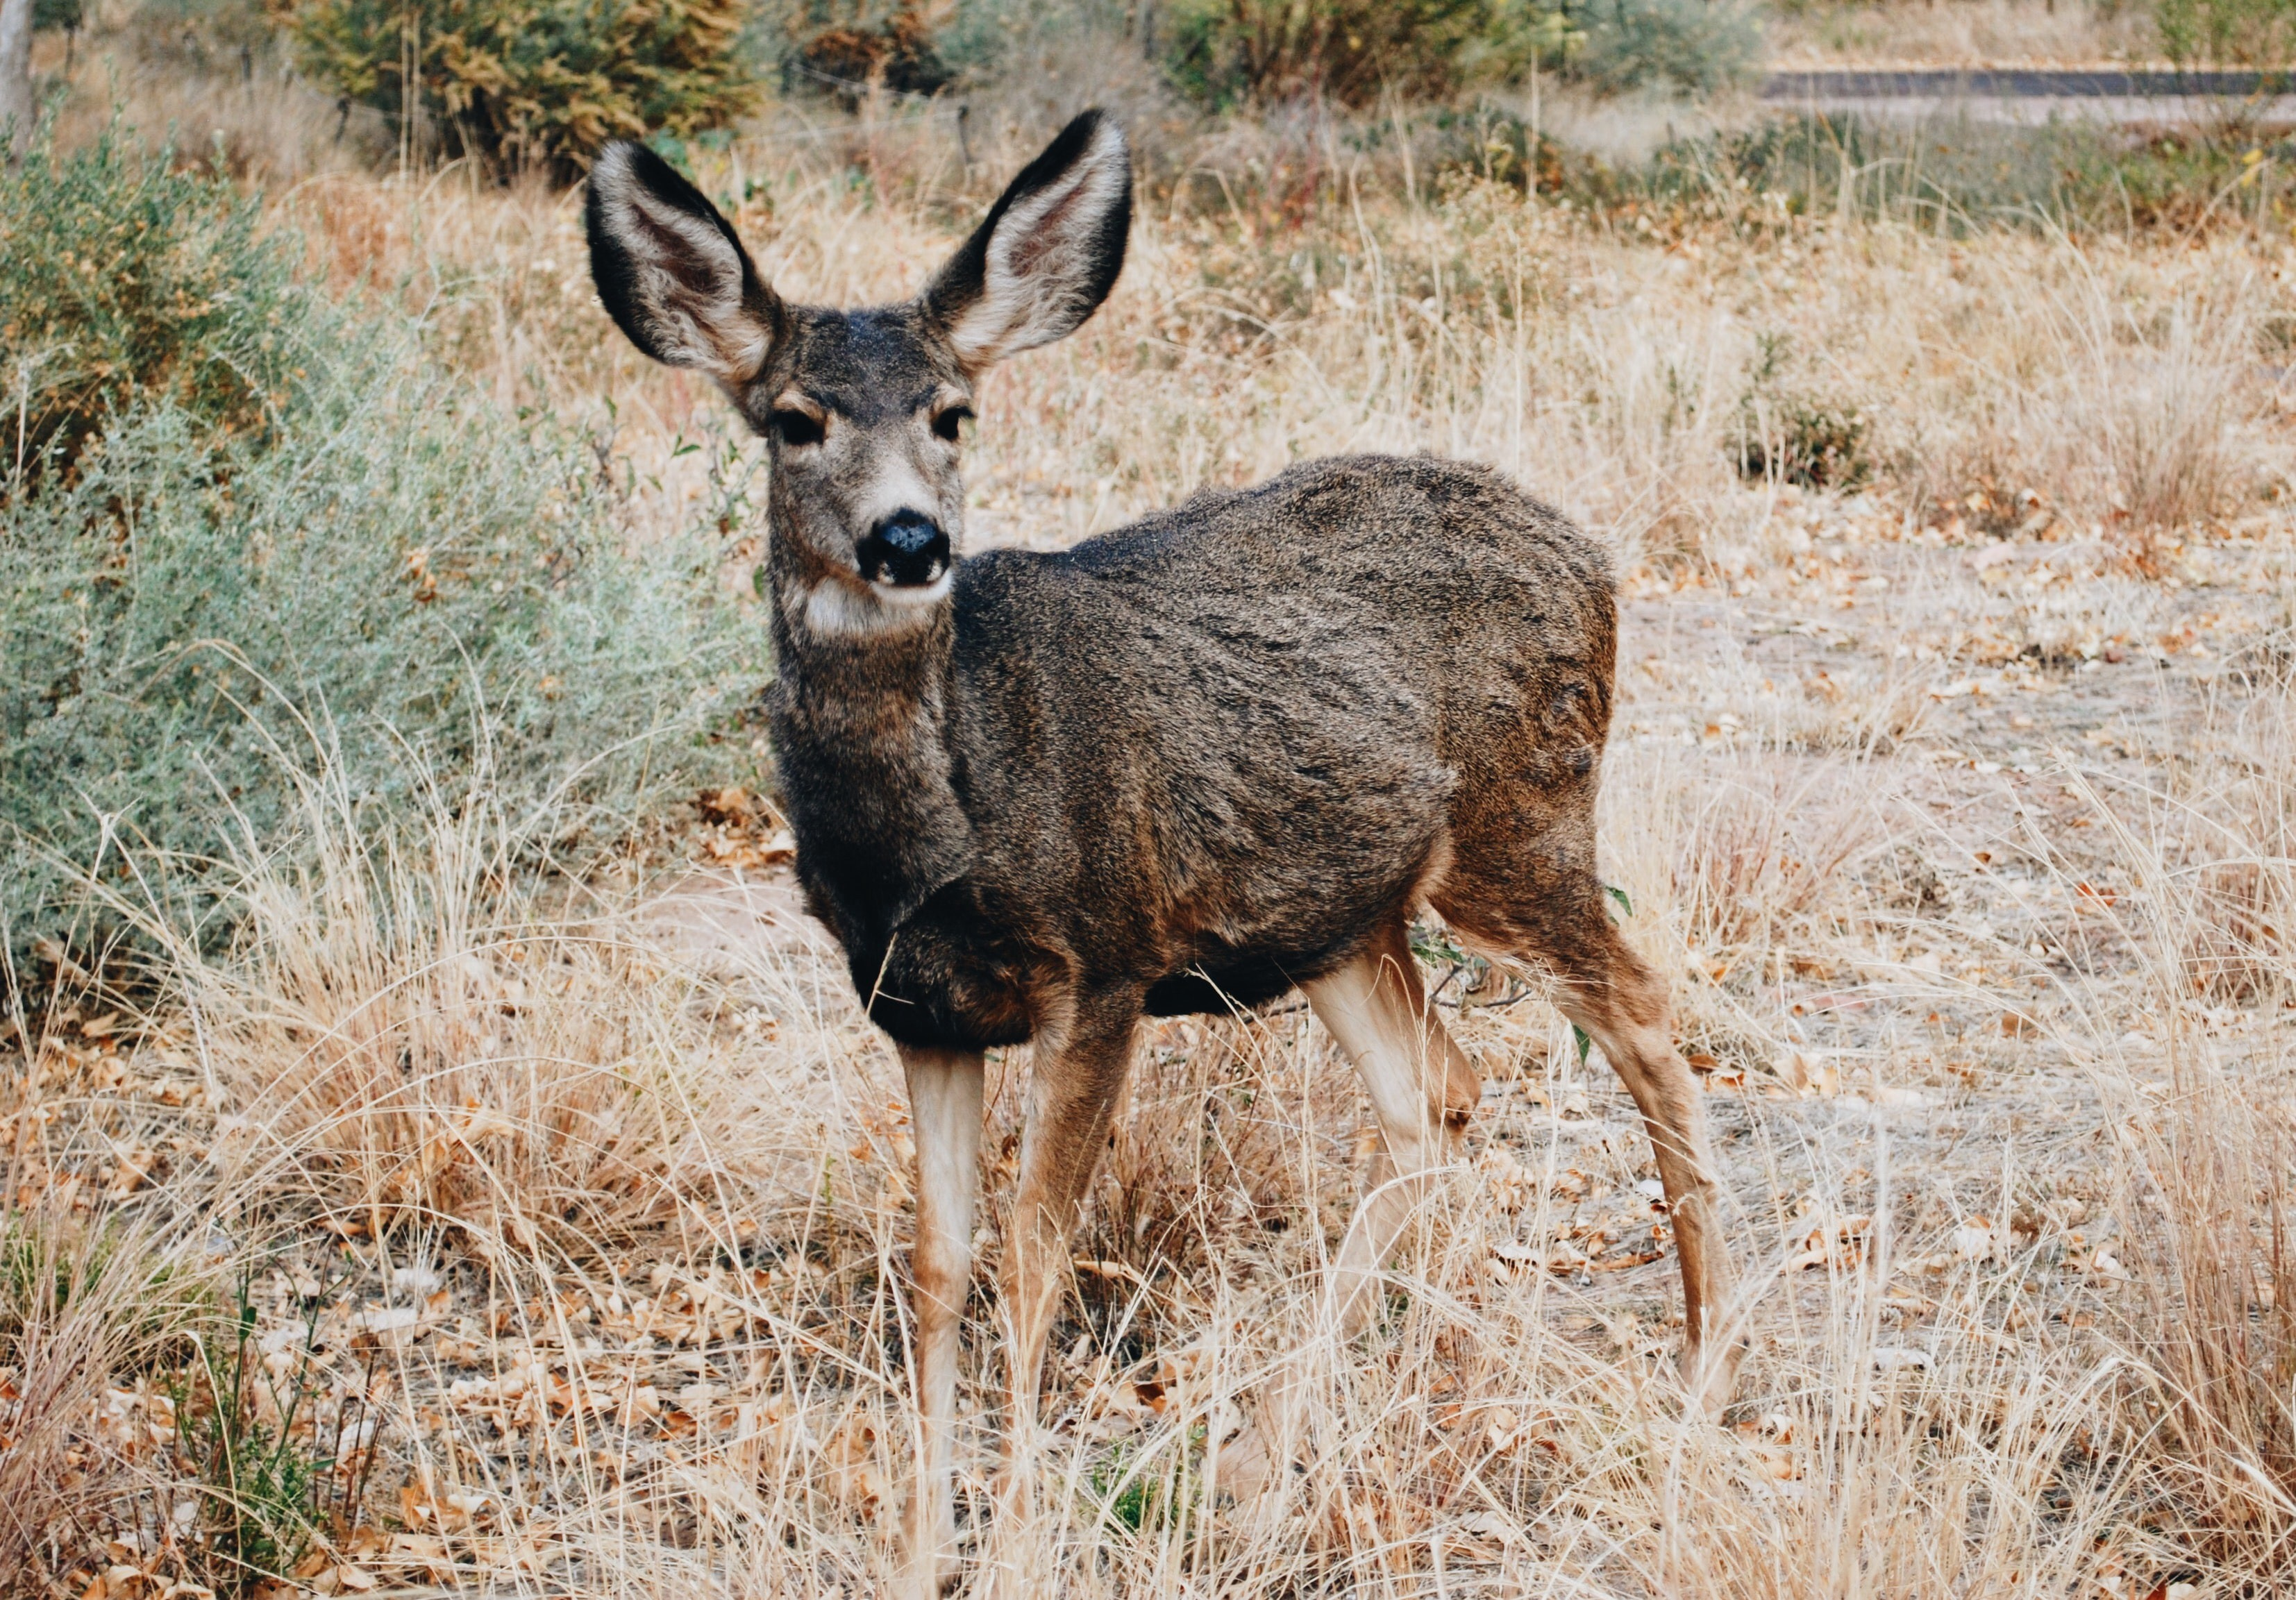 A deer standing in a field of dry grass.